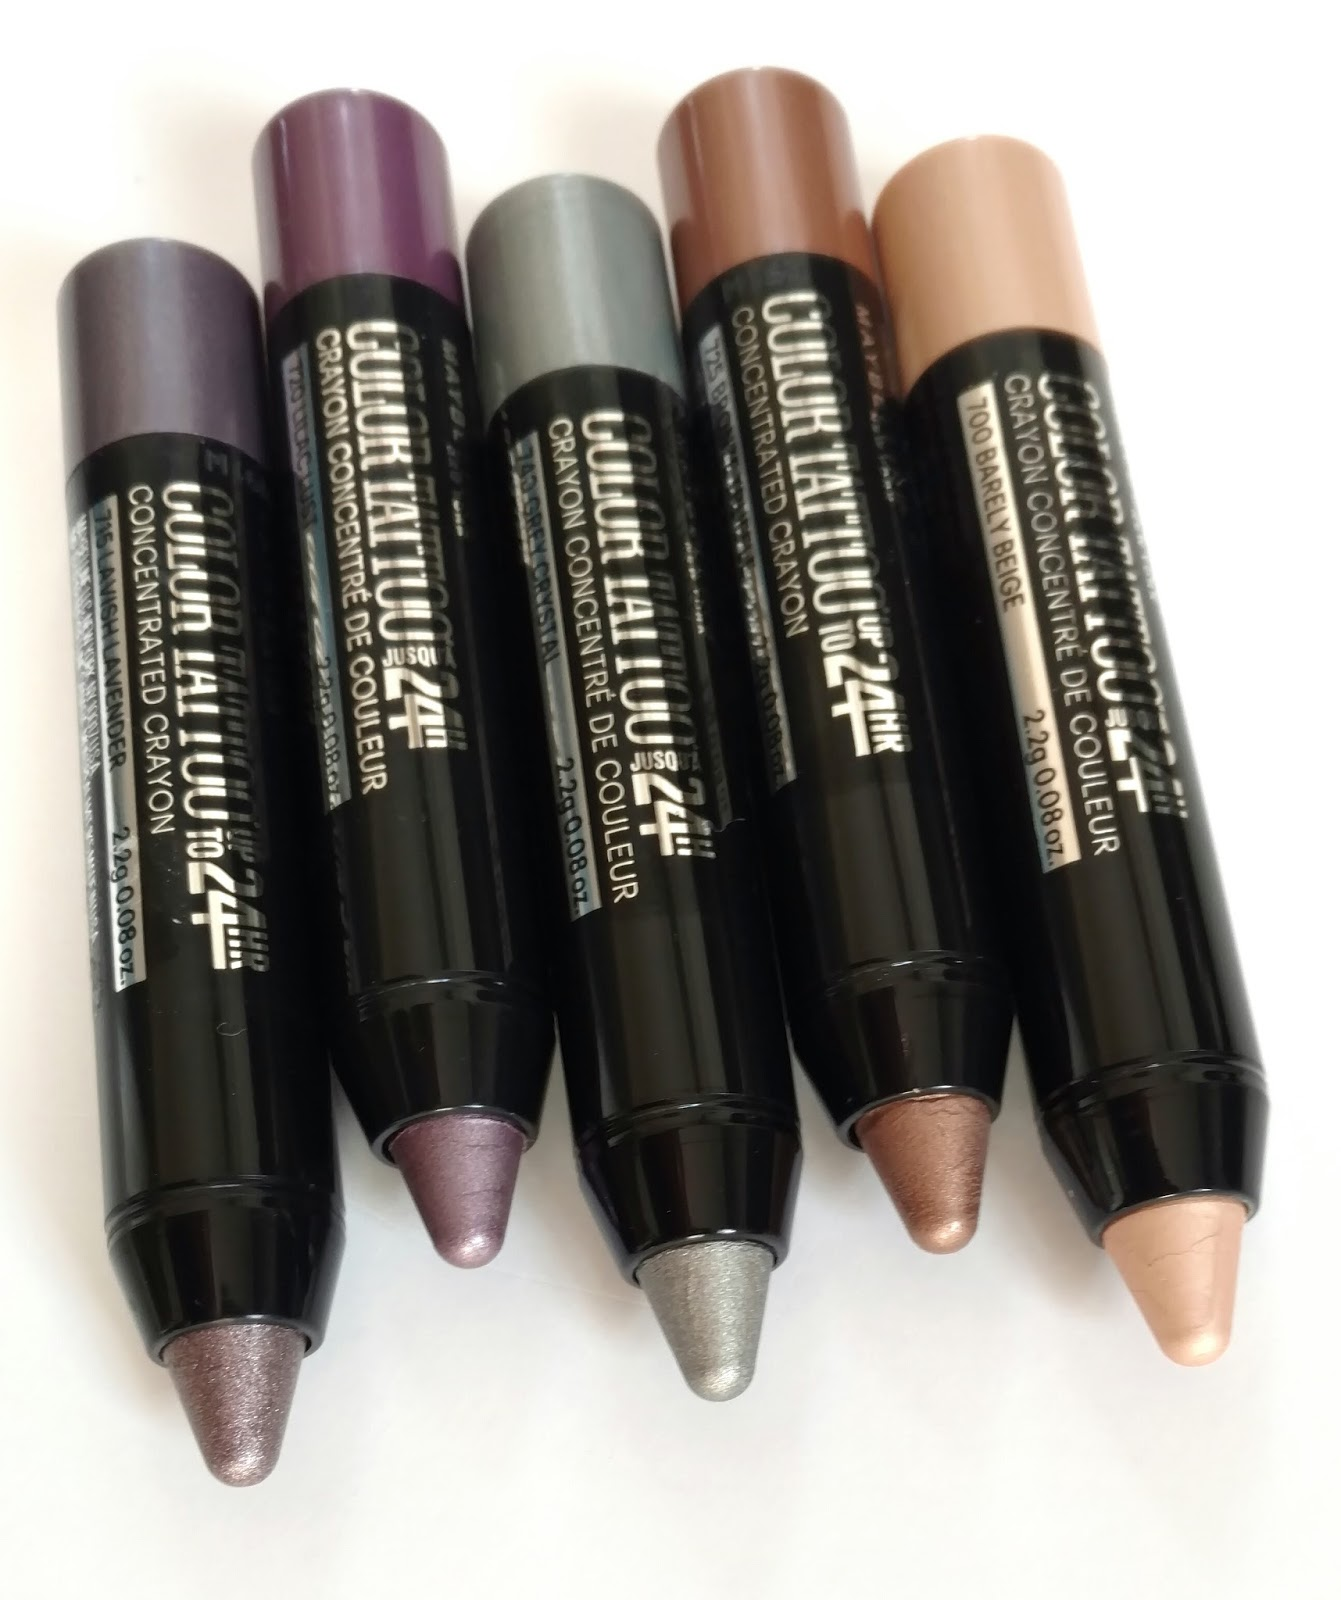 Maybelline Color Tattoo Concentrated Crayon Review